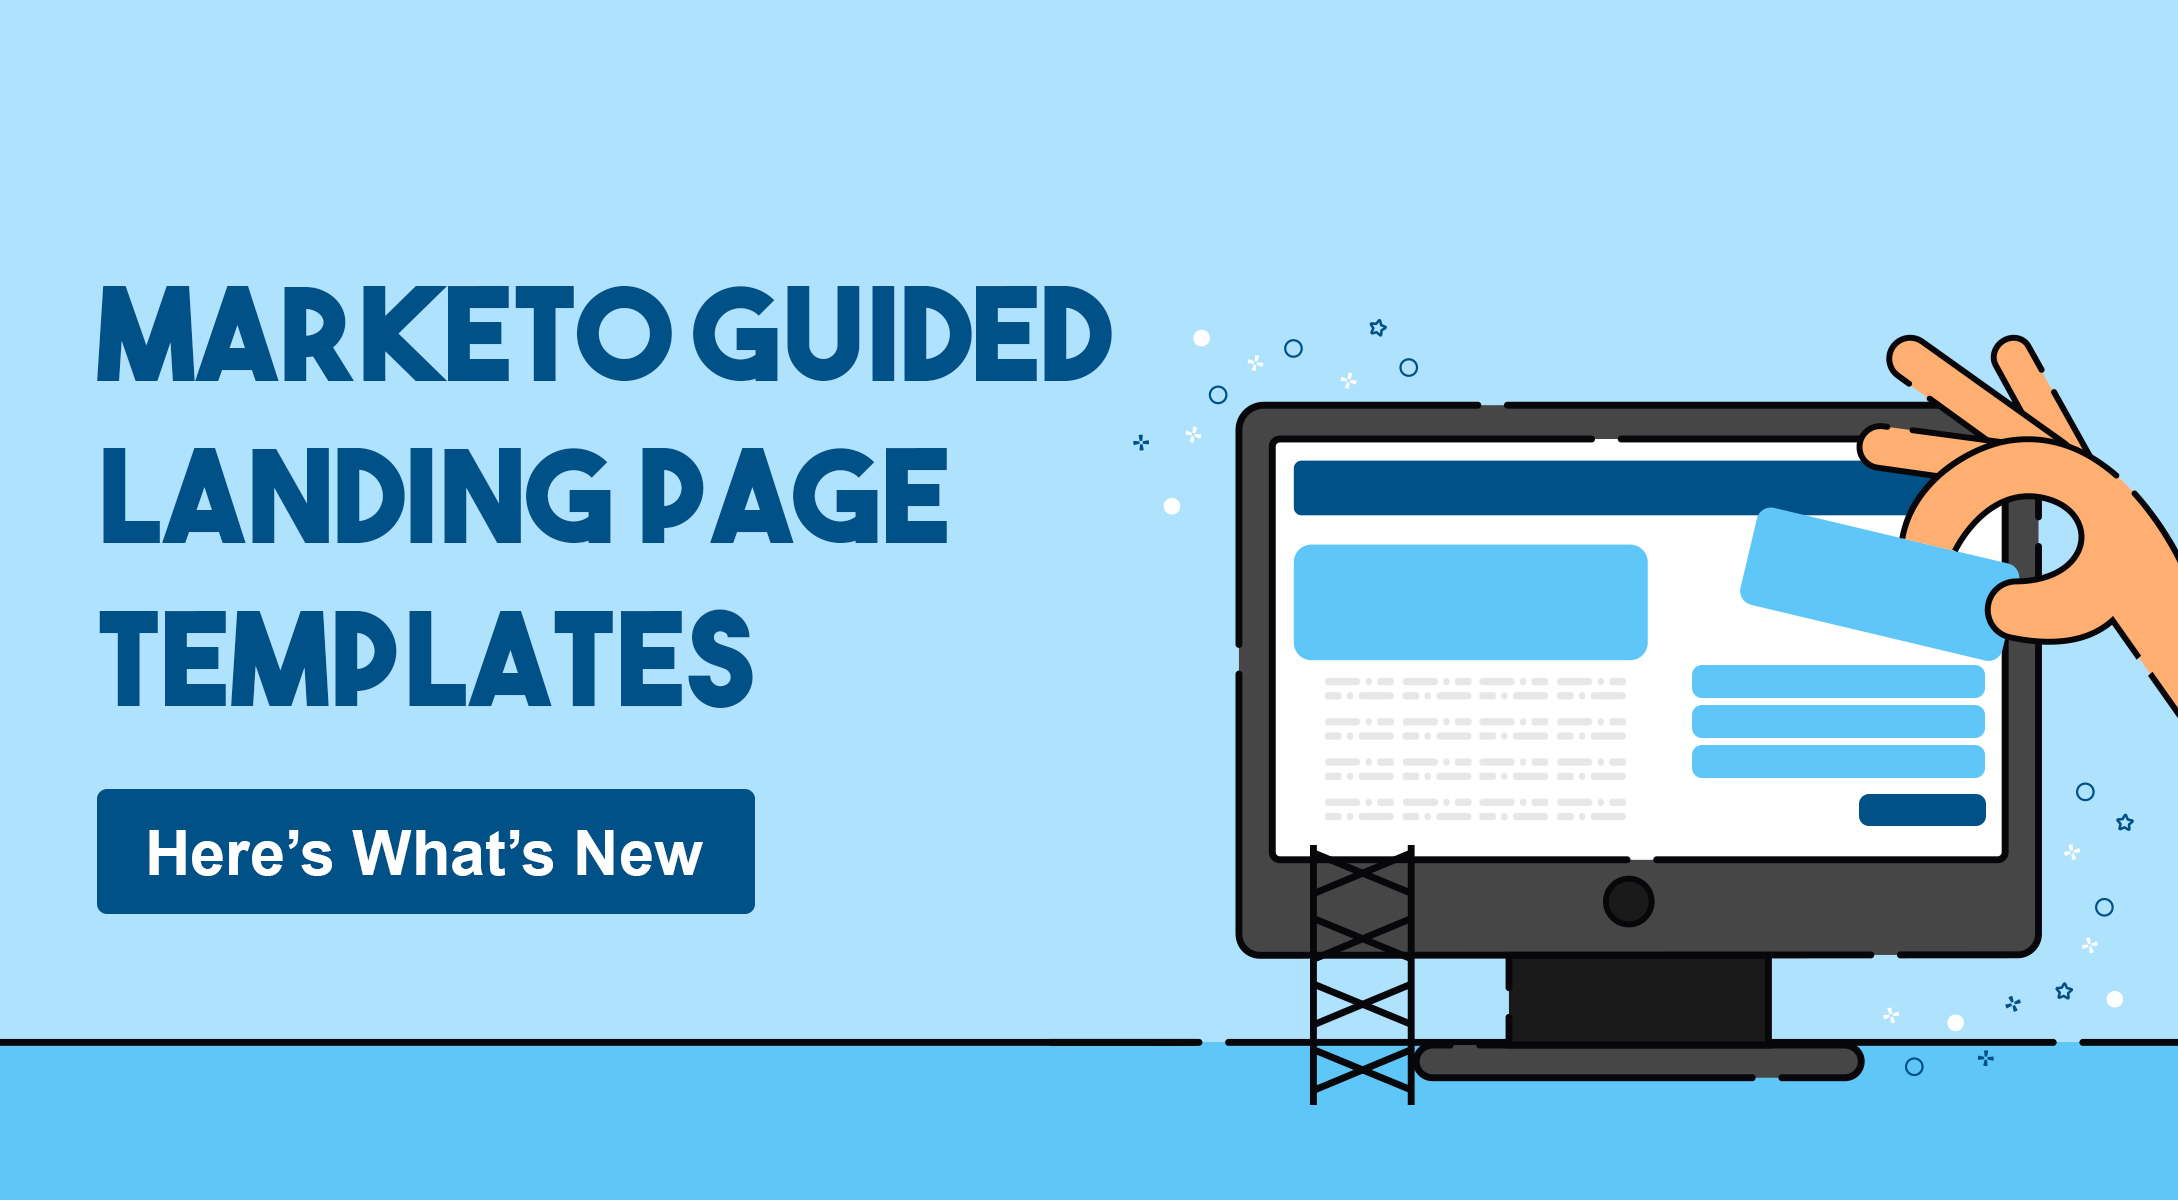 Marketo Guided Landing Page Templates - Here's What's New